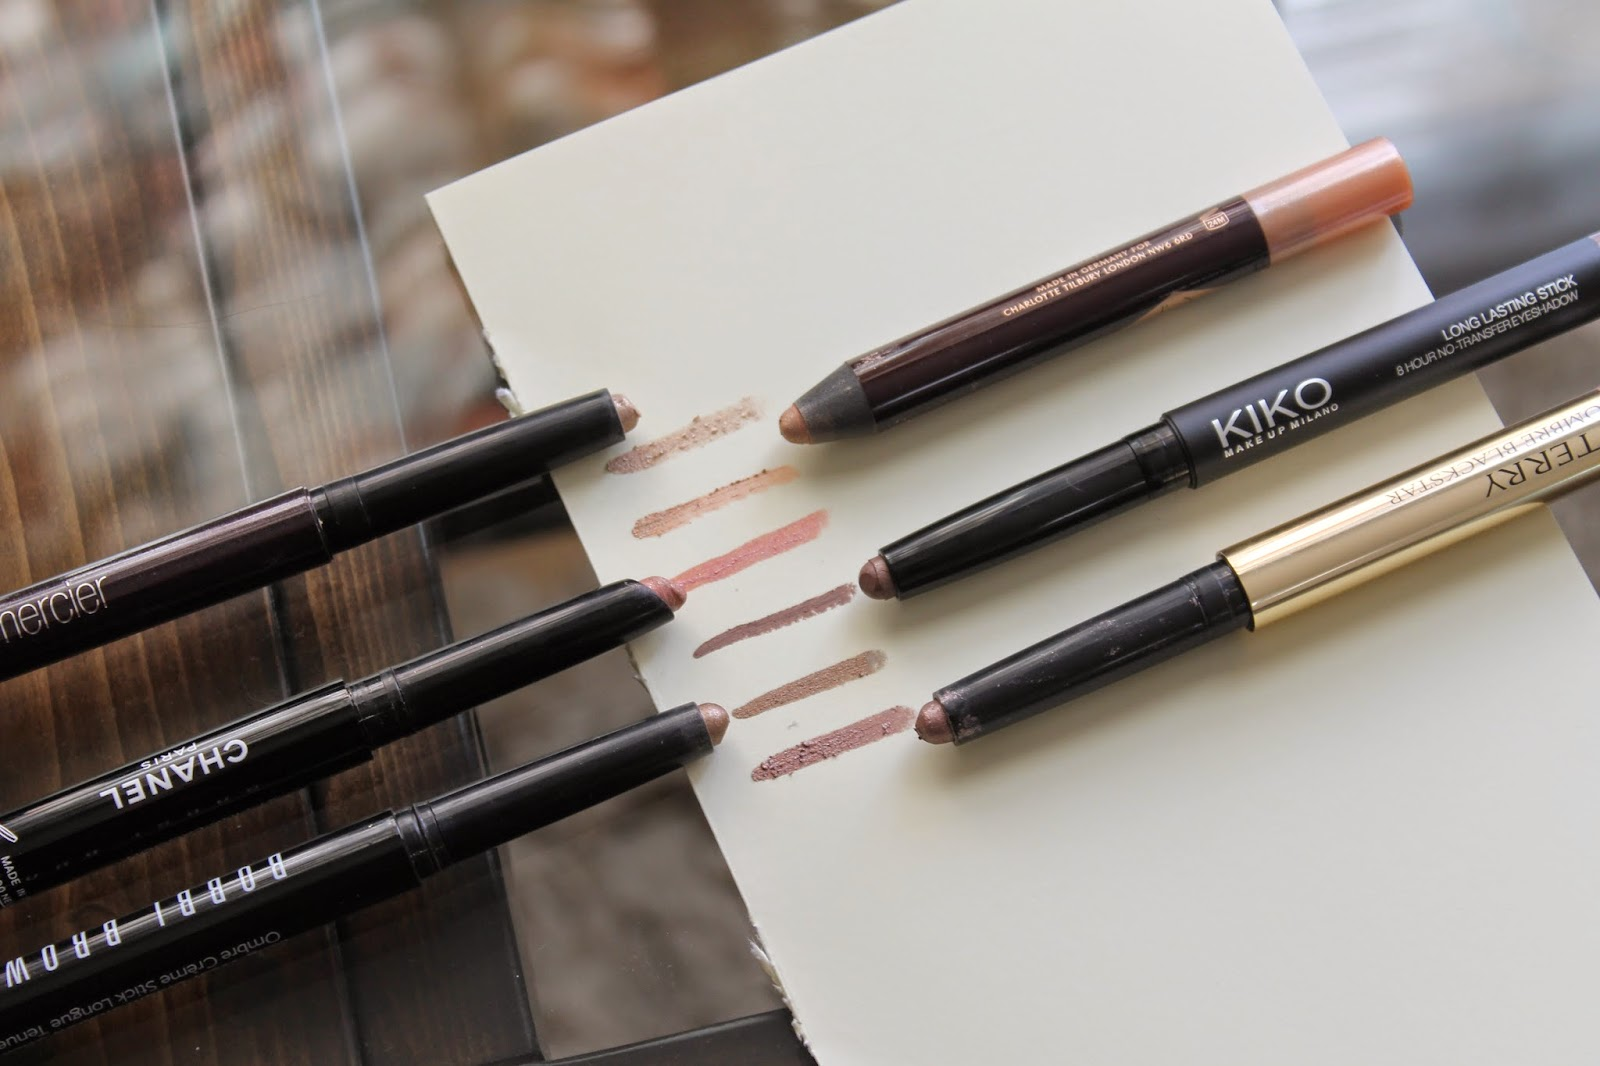 THE EYESHADOW STICK ROUNDUP